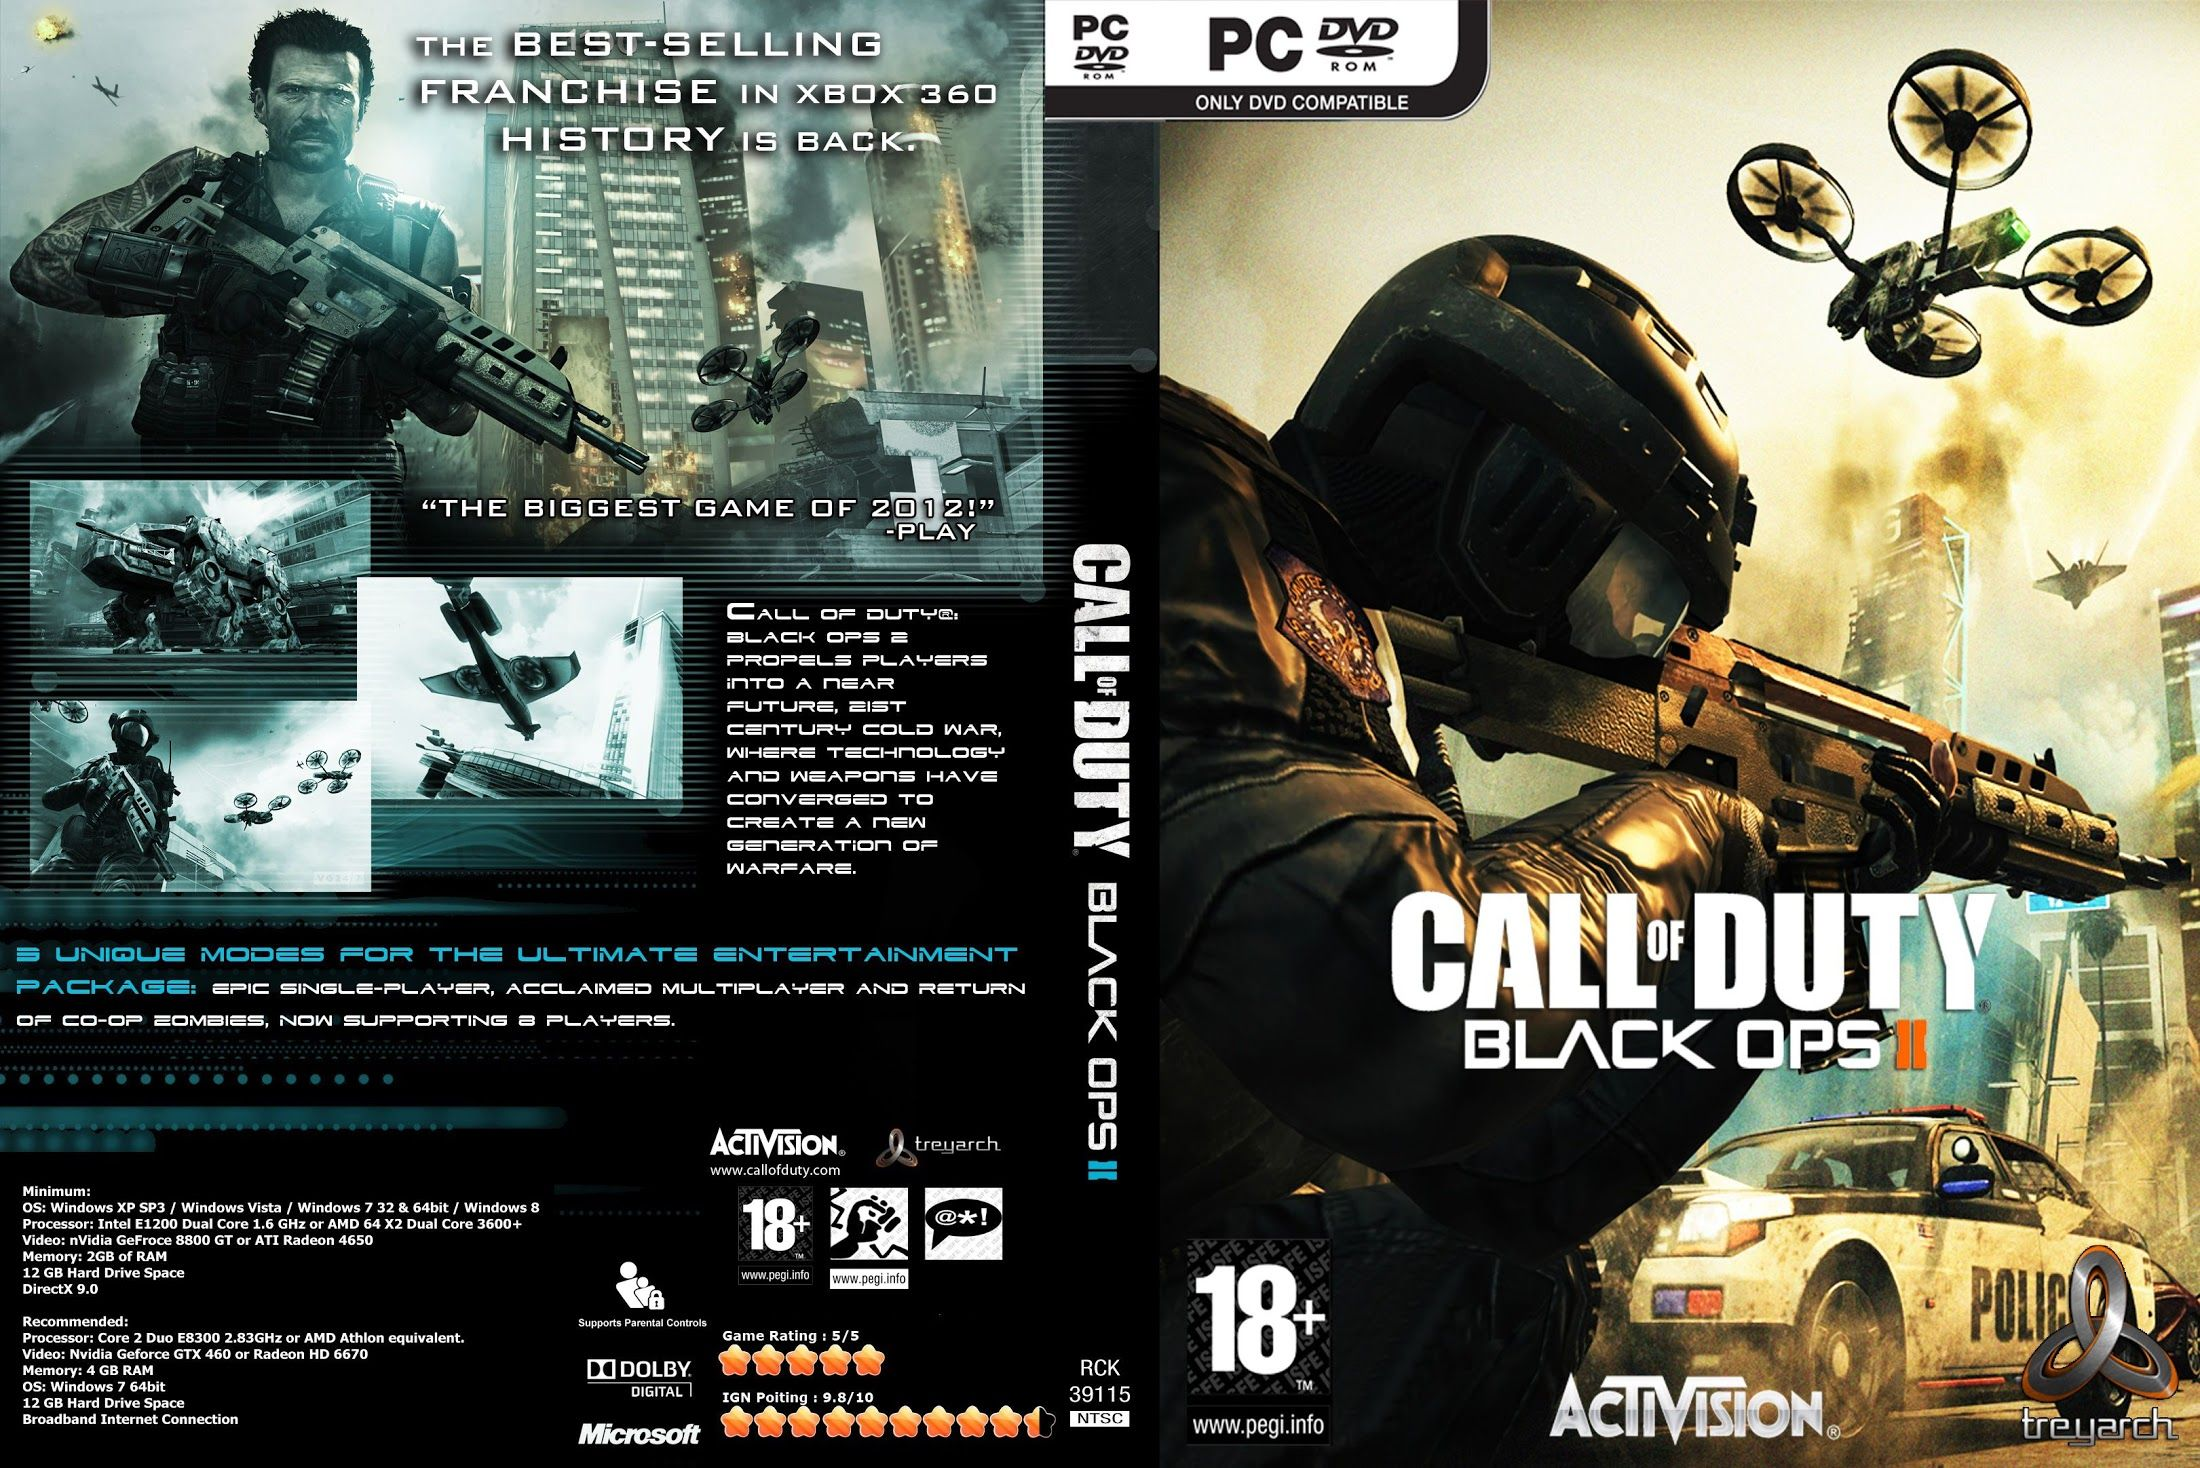 Call of duty black ops 2 pc dvdrom cover